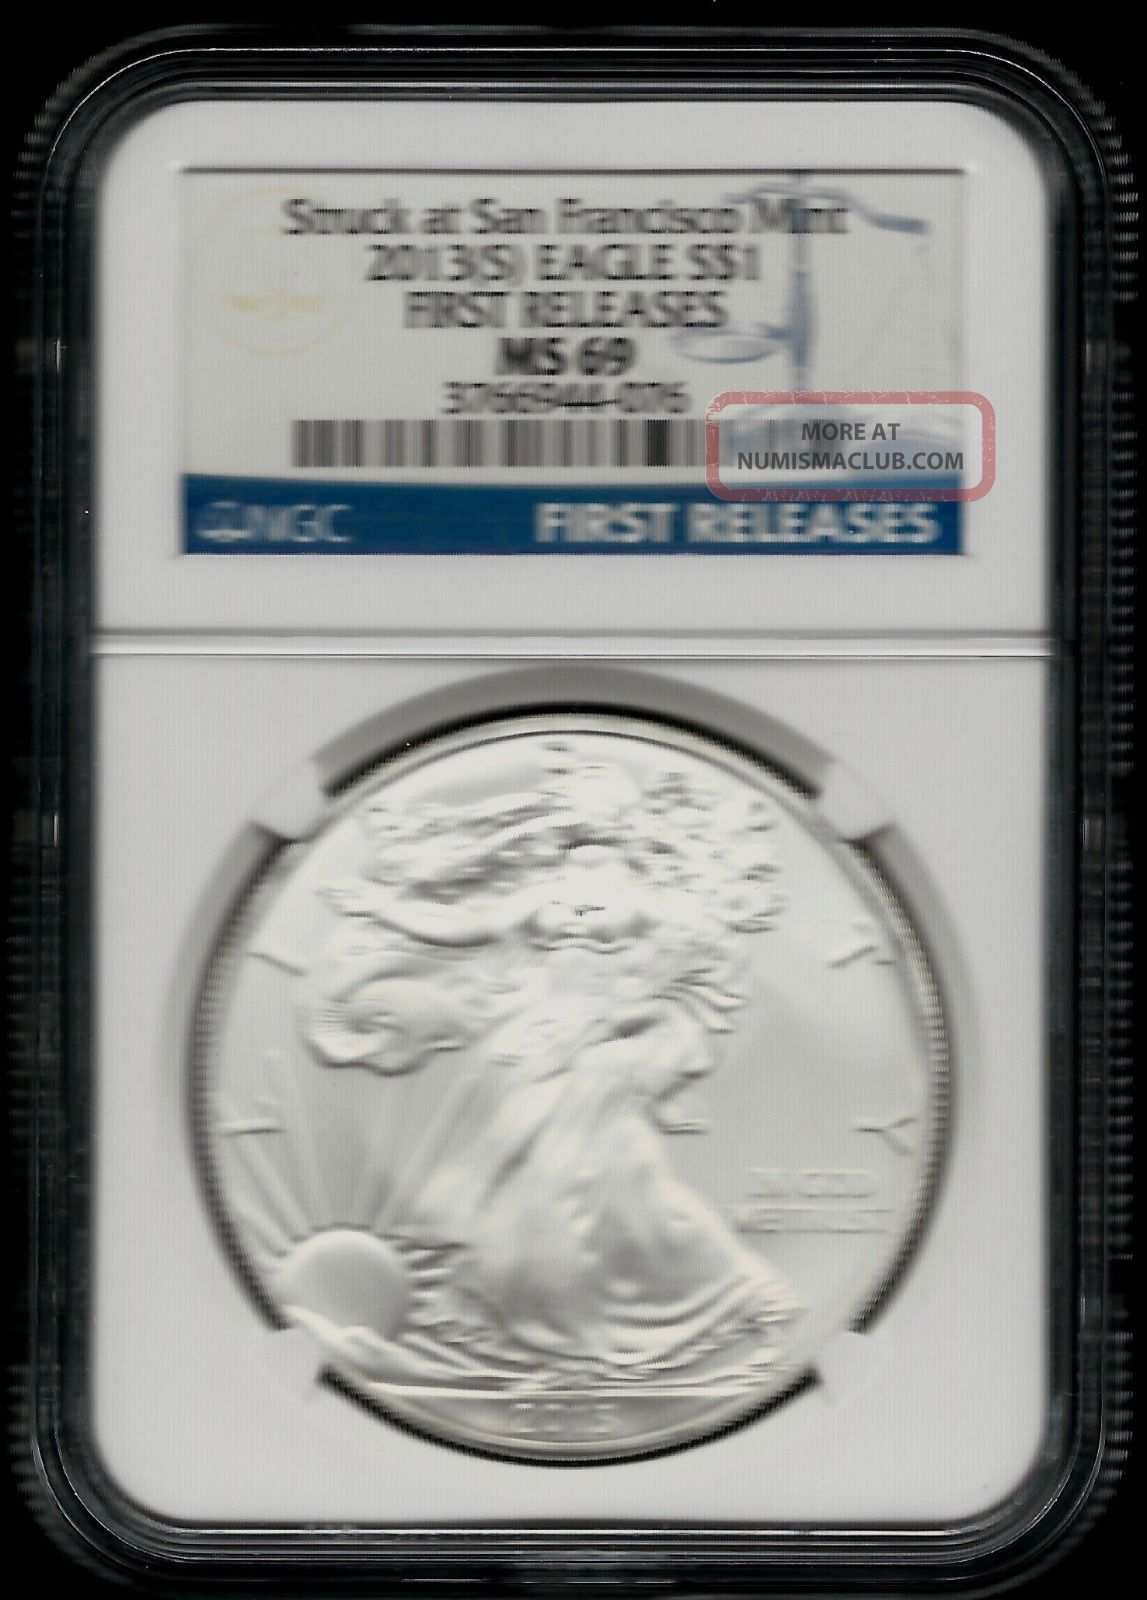 2013 (s) American Silver Eagle (fr) - Ngc Ms 69 - Blue Label - 1 Oz Silver photo